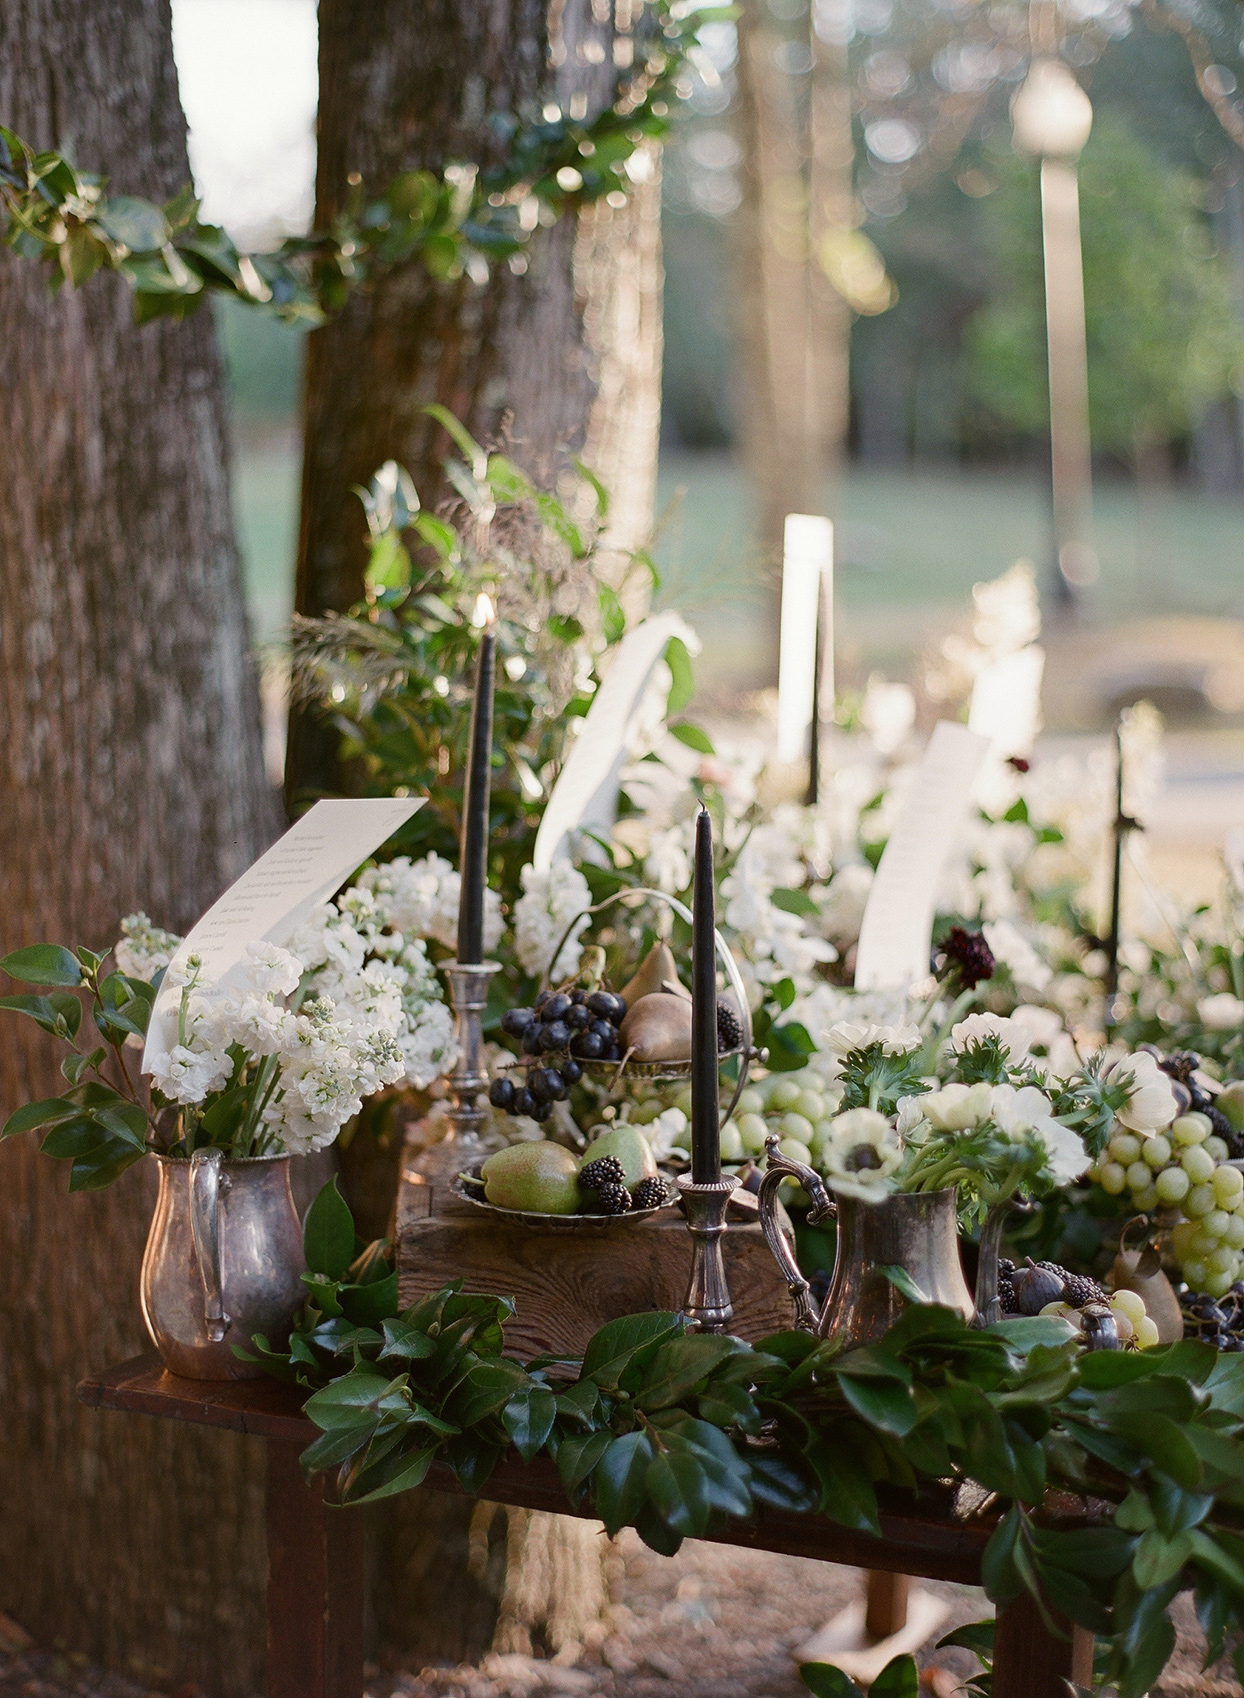 Rehearsal dinner ideas - ornate metal jugs filled with flowers and seating chart papers at rustic table